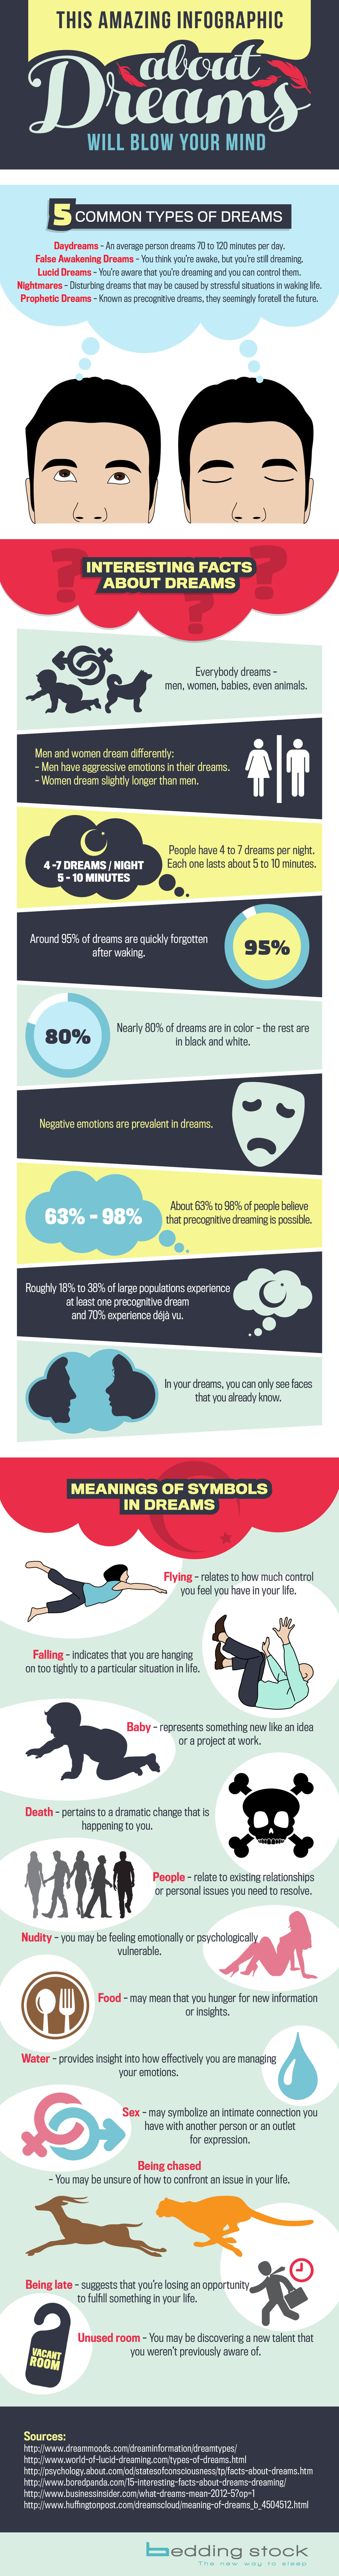 This Amazing Infographic About Dreams Will Blow Your Mind